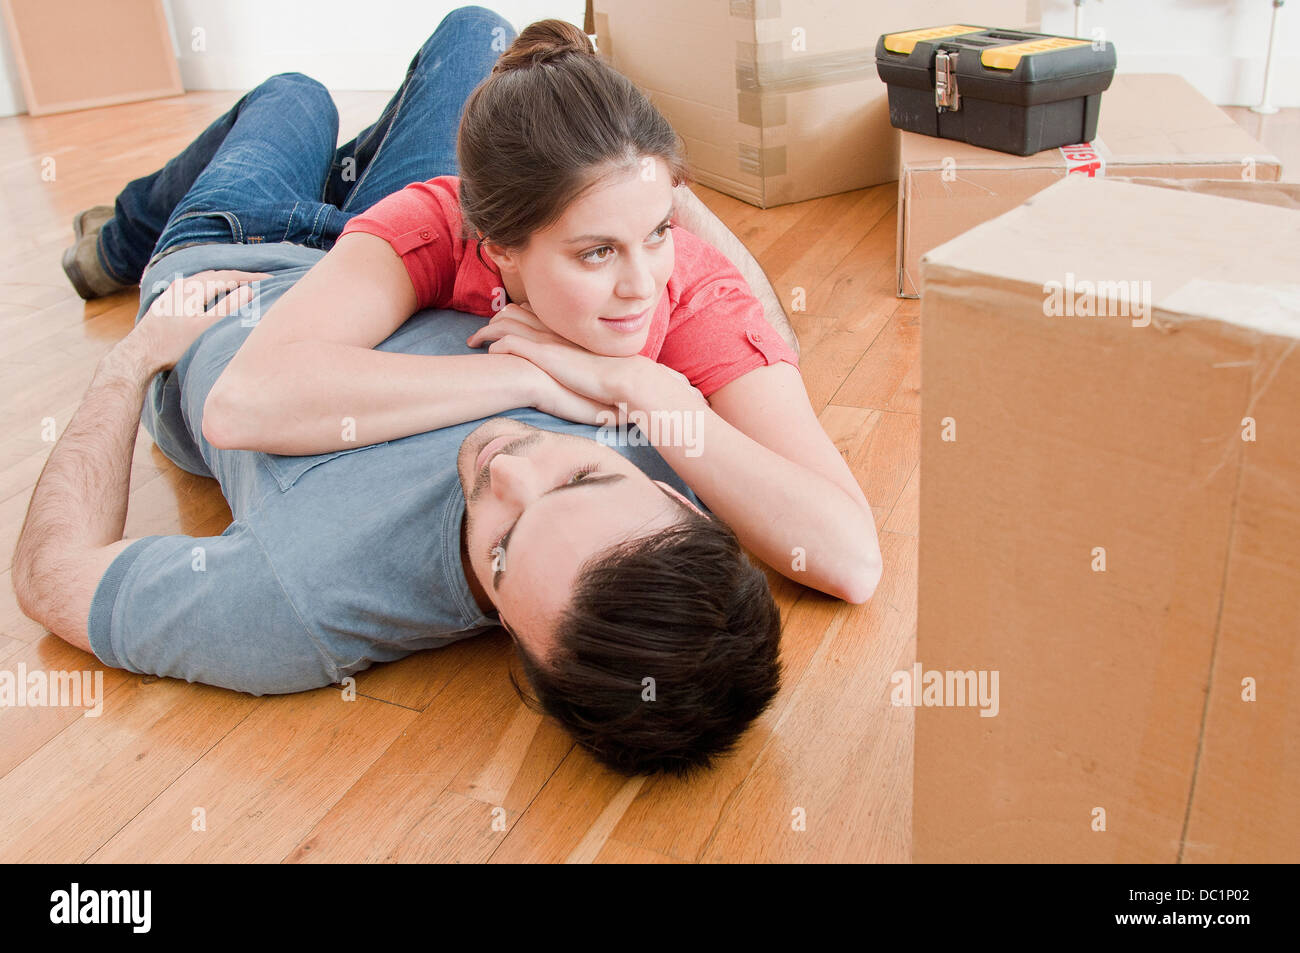 Young couple taking a break amongst cardboard boxes - Stock Image